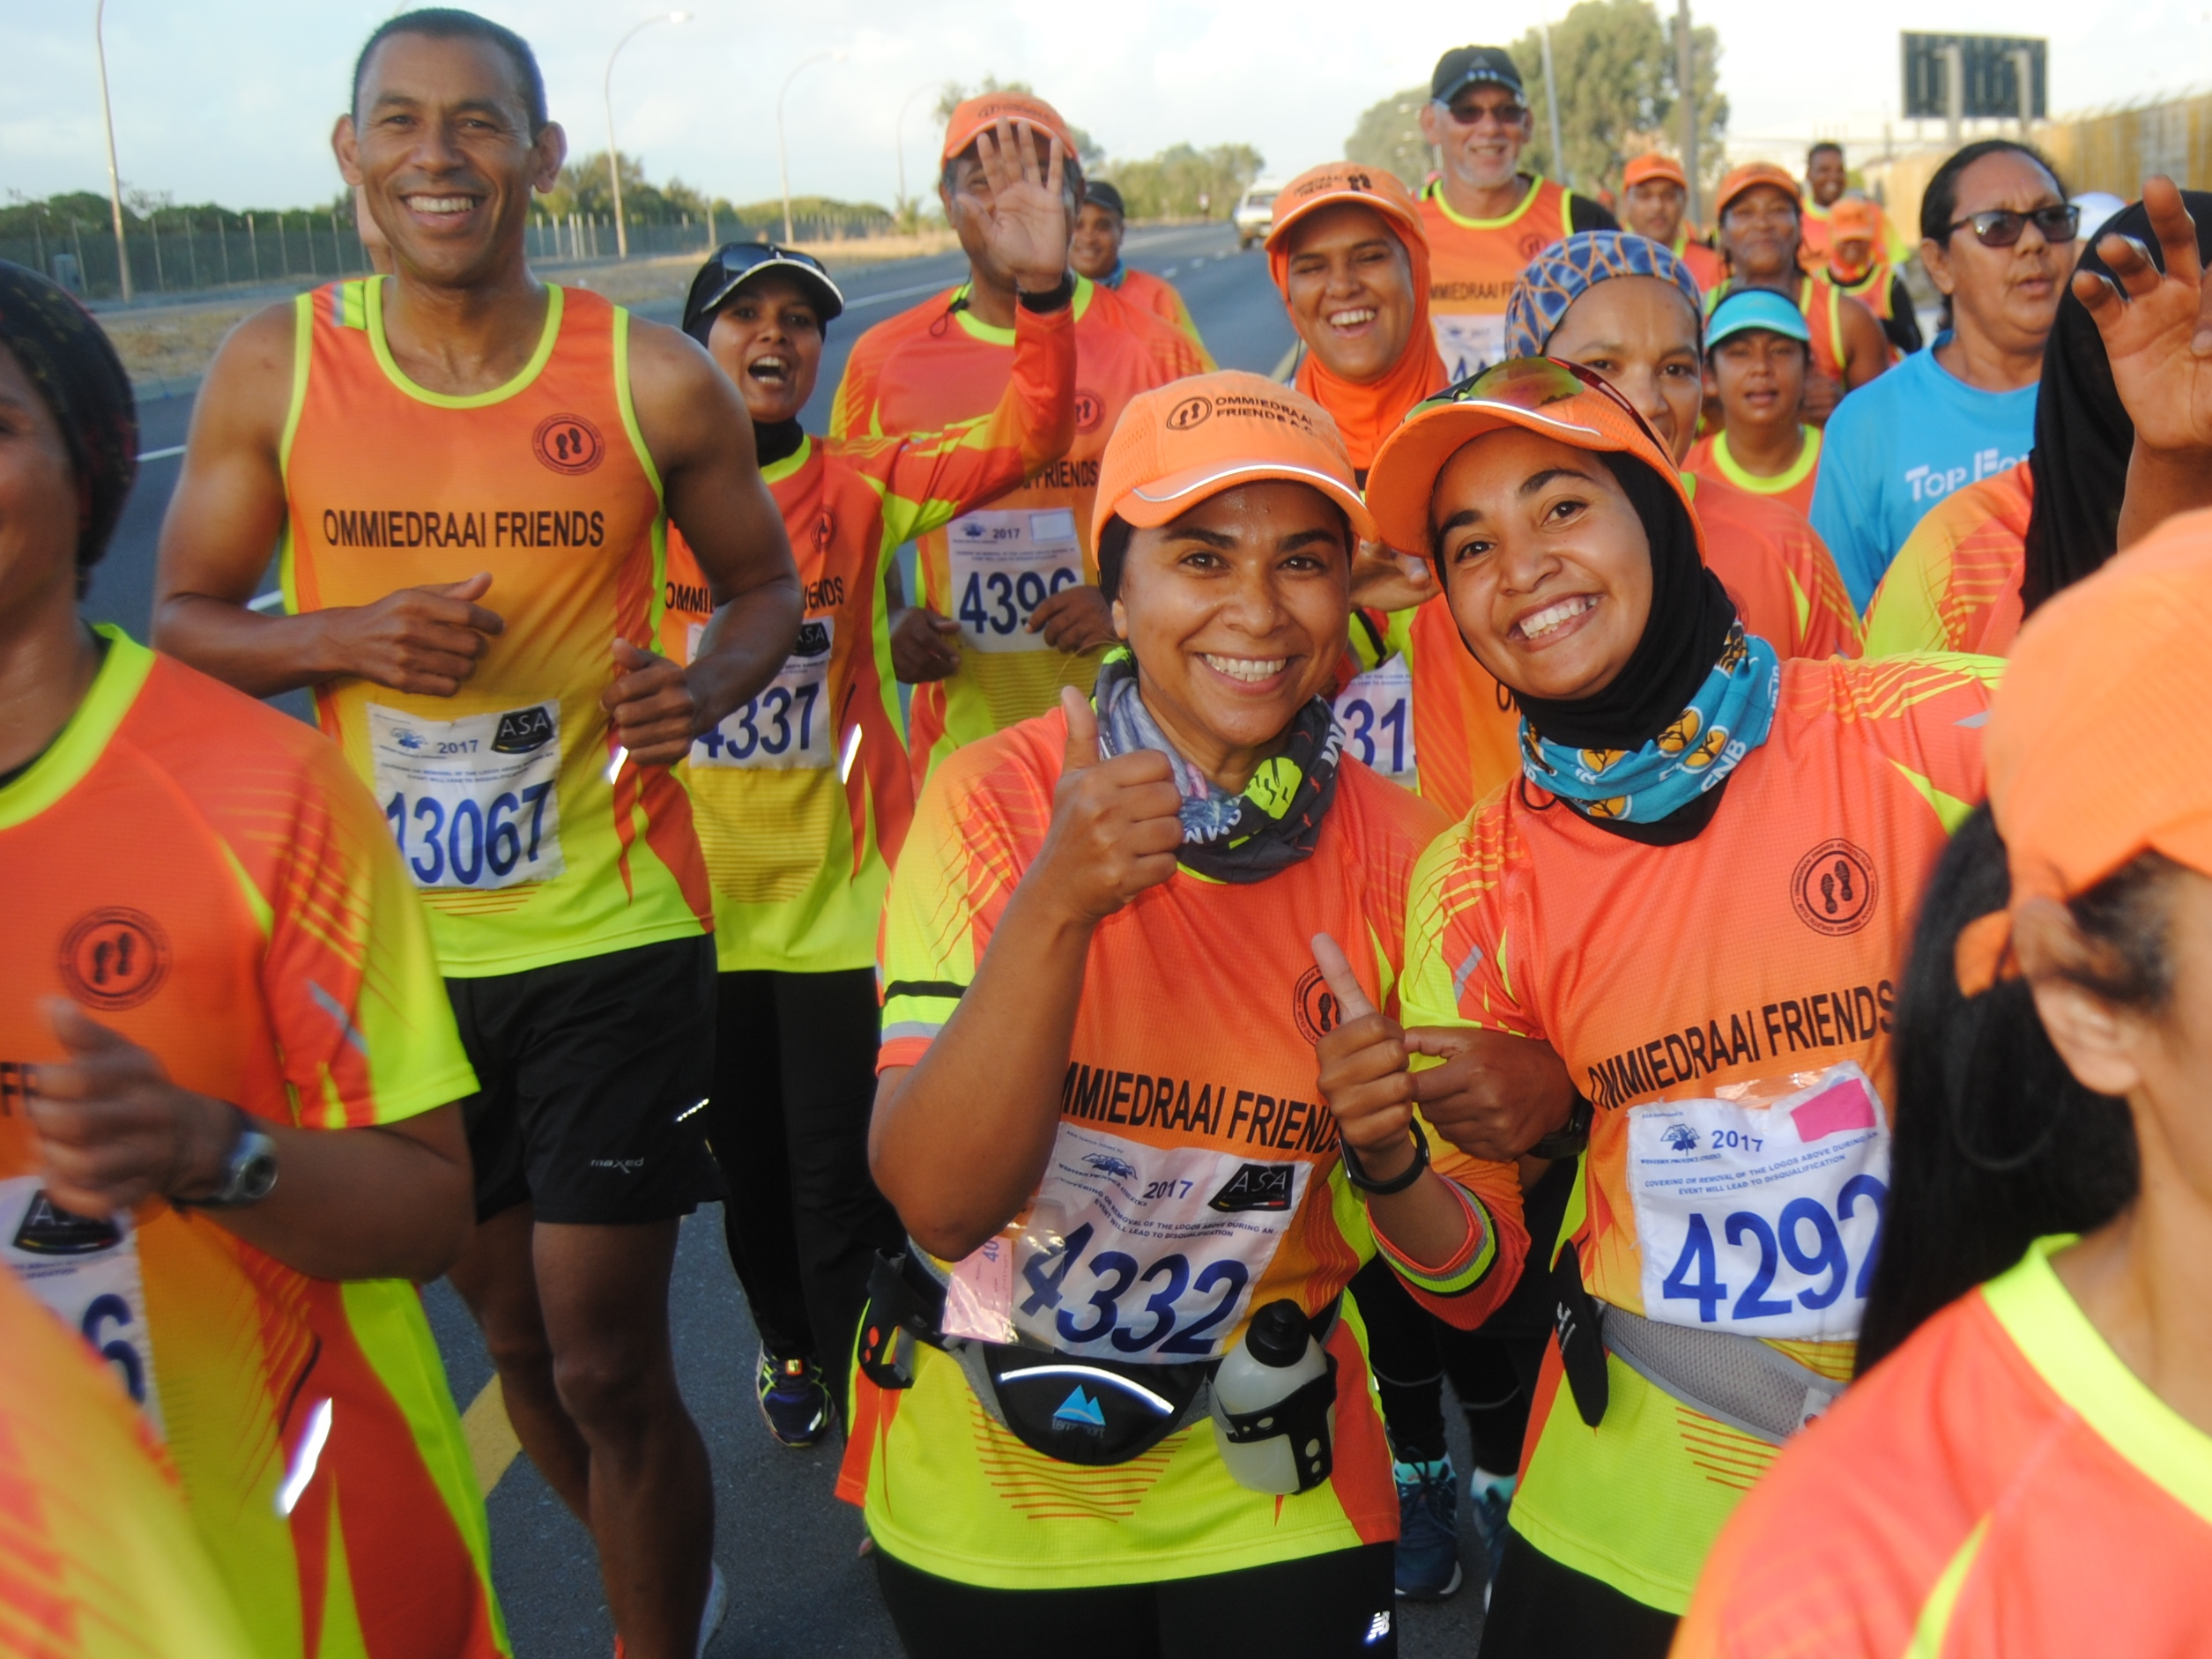 The Ommiedraai Friends Athletic Club (Kenilworth) is counting down the days to the 2nd annual Cell C Day Of Races powered by Reebok that will take place at the Greenpoint A Track on Sunday, 23 April 2017.  The Cell C Day Of Races allows entrants to choose the start wave the suits them best.  Instead of going for gold, runners are encouraged to beat their Personal Best finishing times, be social, take photographs and videos at designated points on route, share it to the event's social media platforms and stand a chance to win magnificent prizes.  Seen here:  Members of the Ommiedraai Friends Athletic Club during a training run.  Photo Credit:  Nazeem Kariem